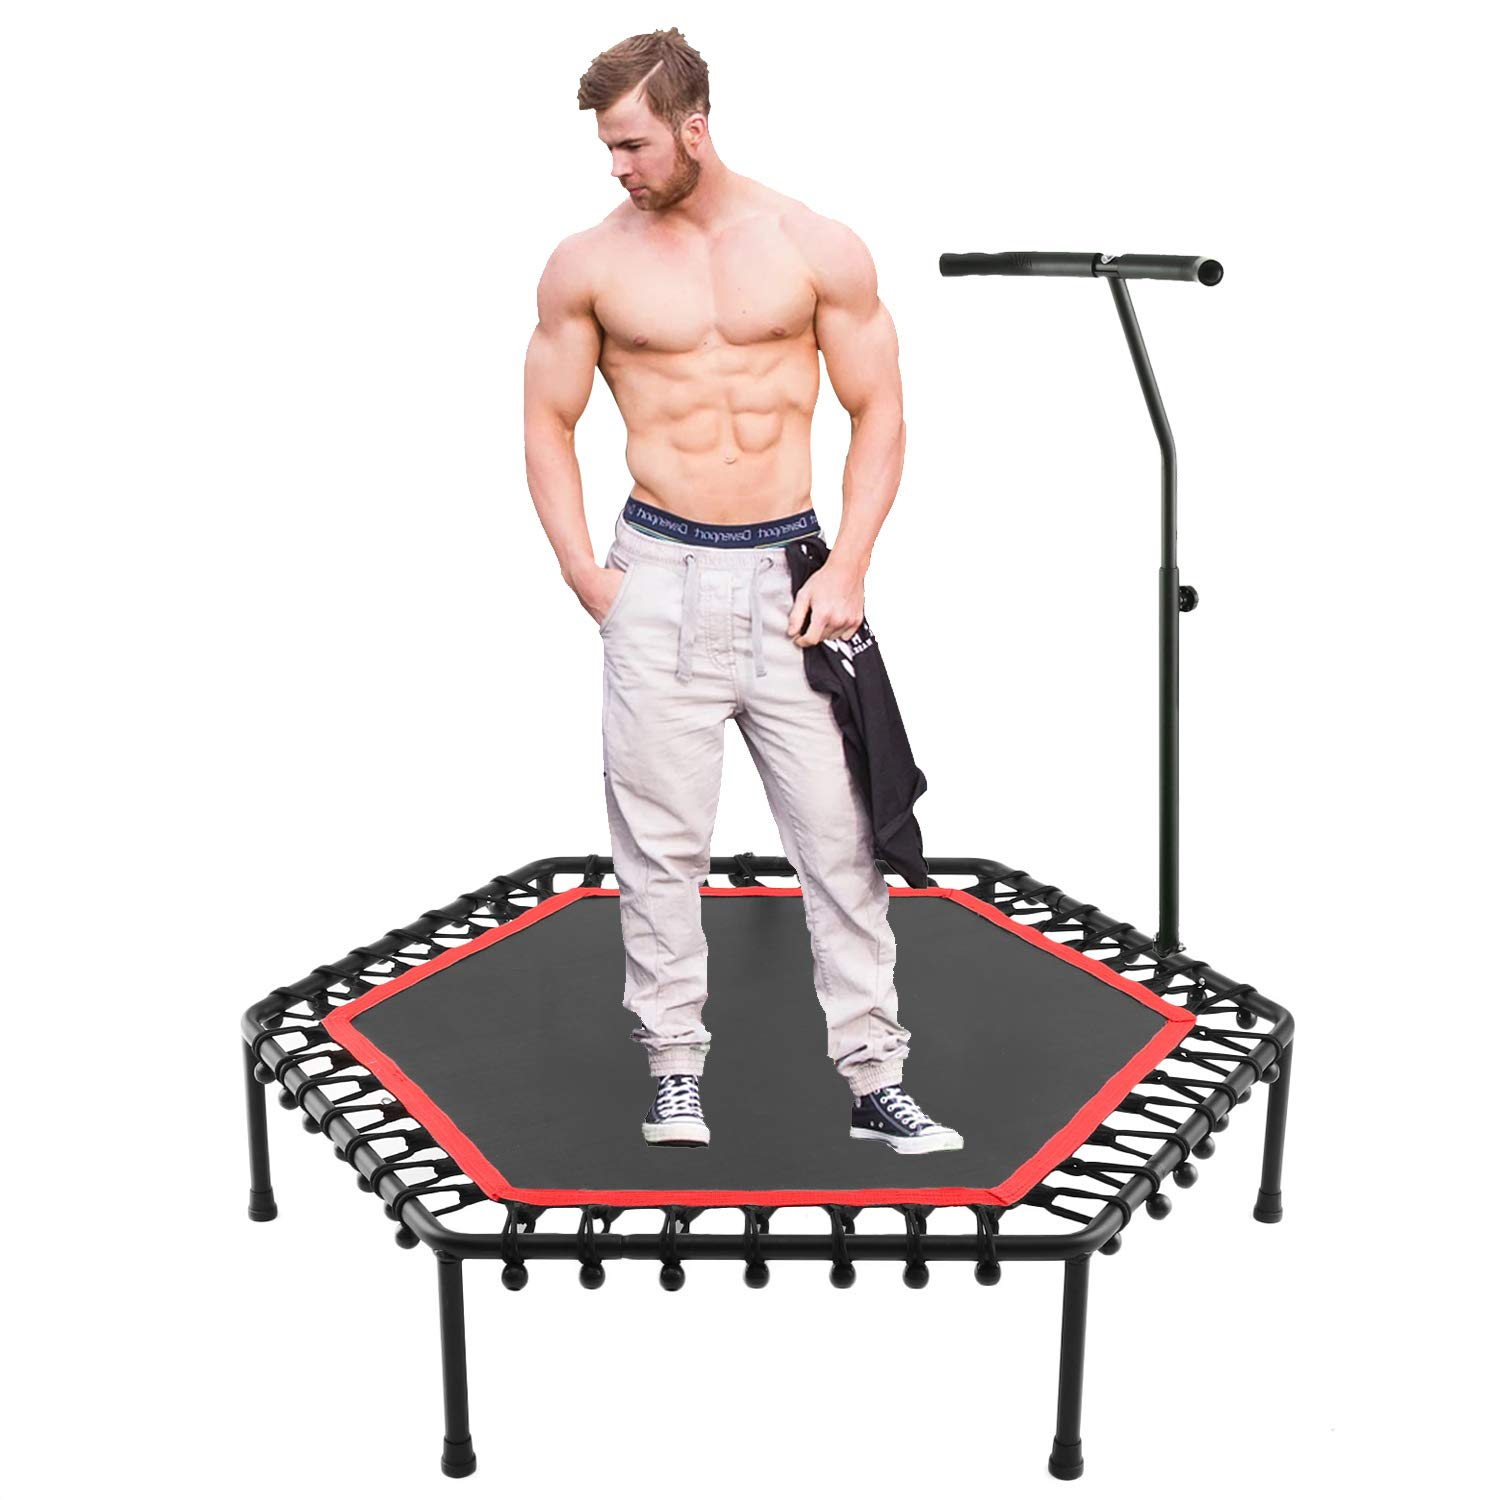 shaofu Small Trampoline Rebounders Fun Trampolines Indoor Max Load 220lbs Rebounder (US Stock) (Red, 38inch - foldable twice) by shaofu